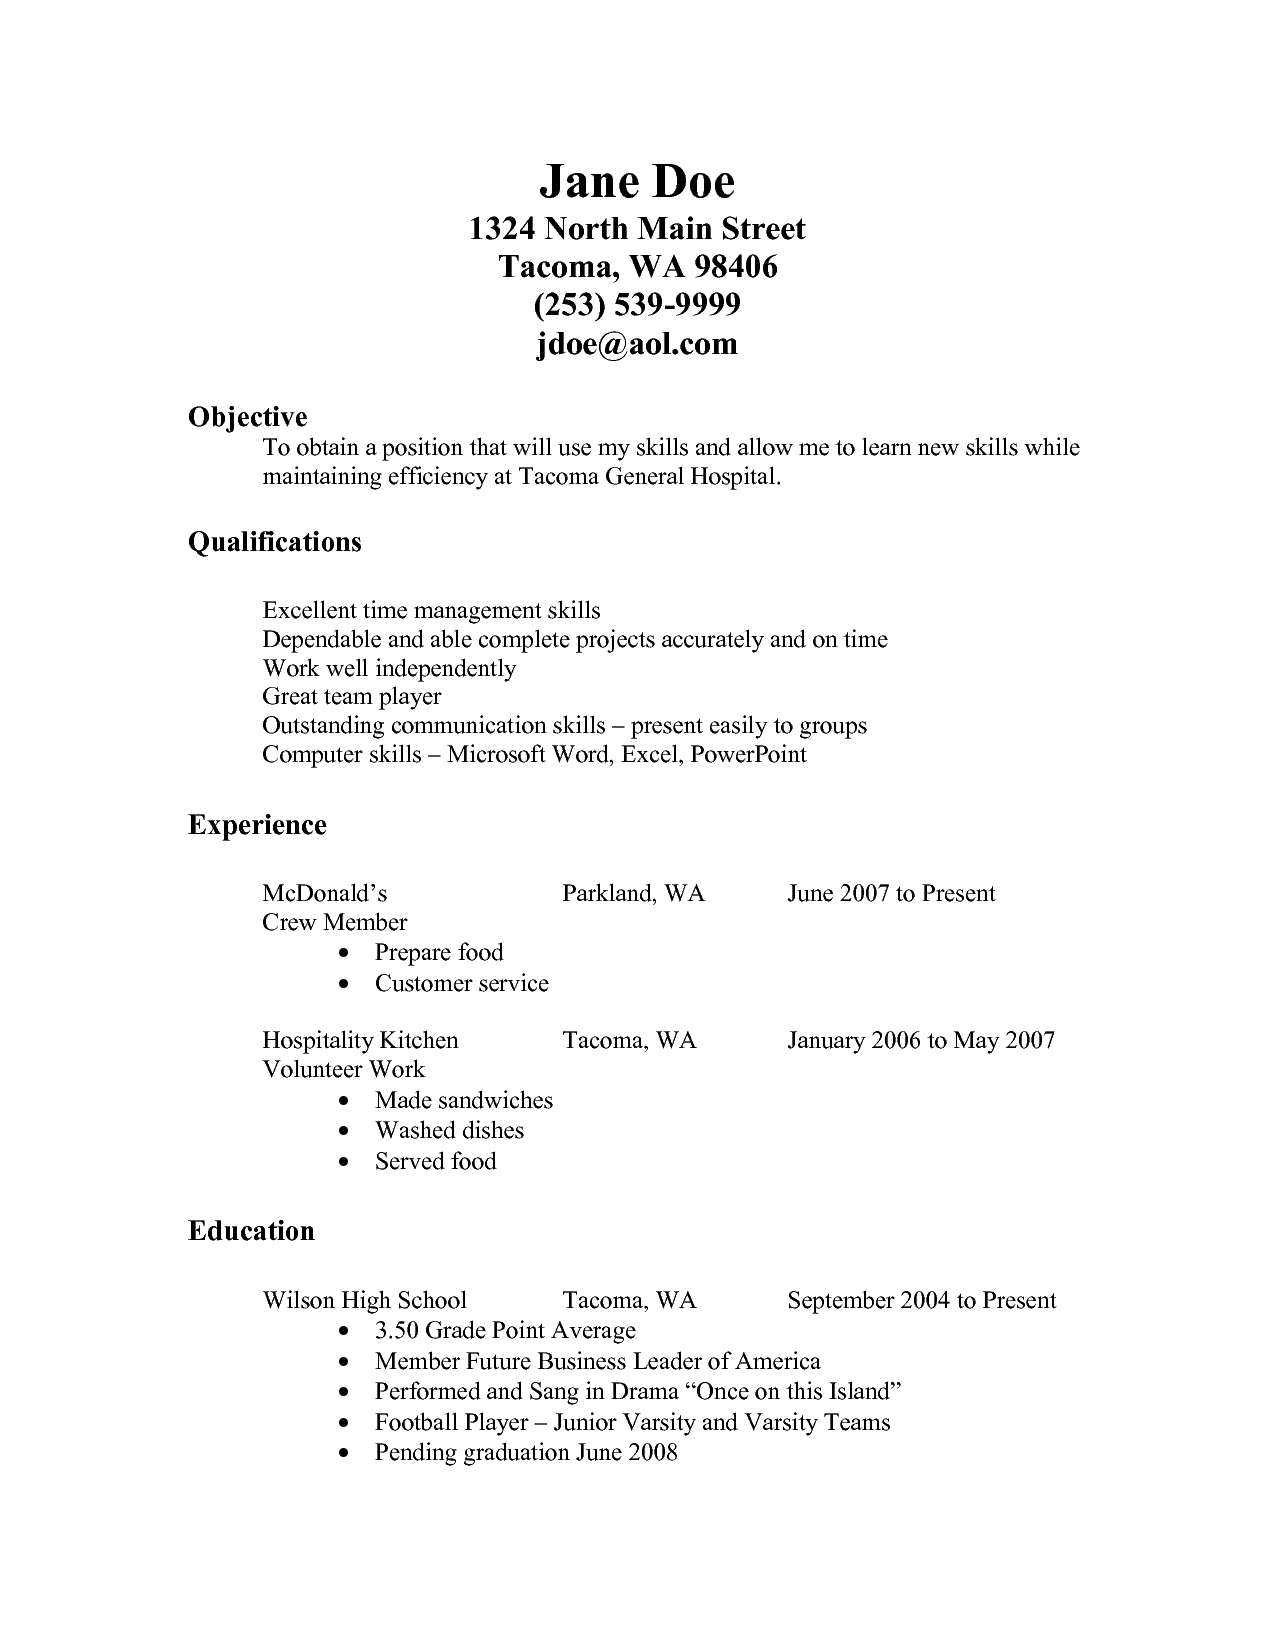 Objectives To Put On A Resume Resume For Fastfood  Fast Food Resume Examples  Resume